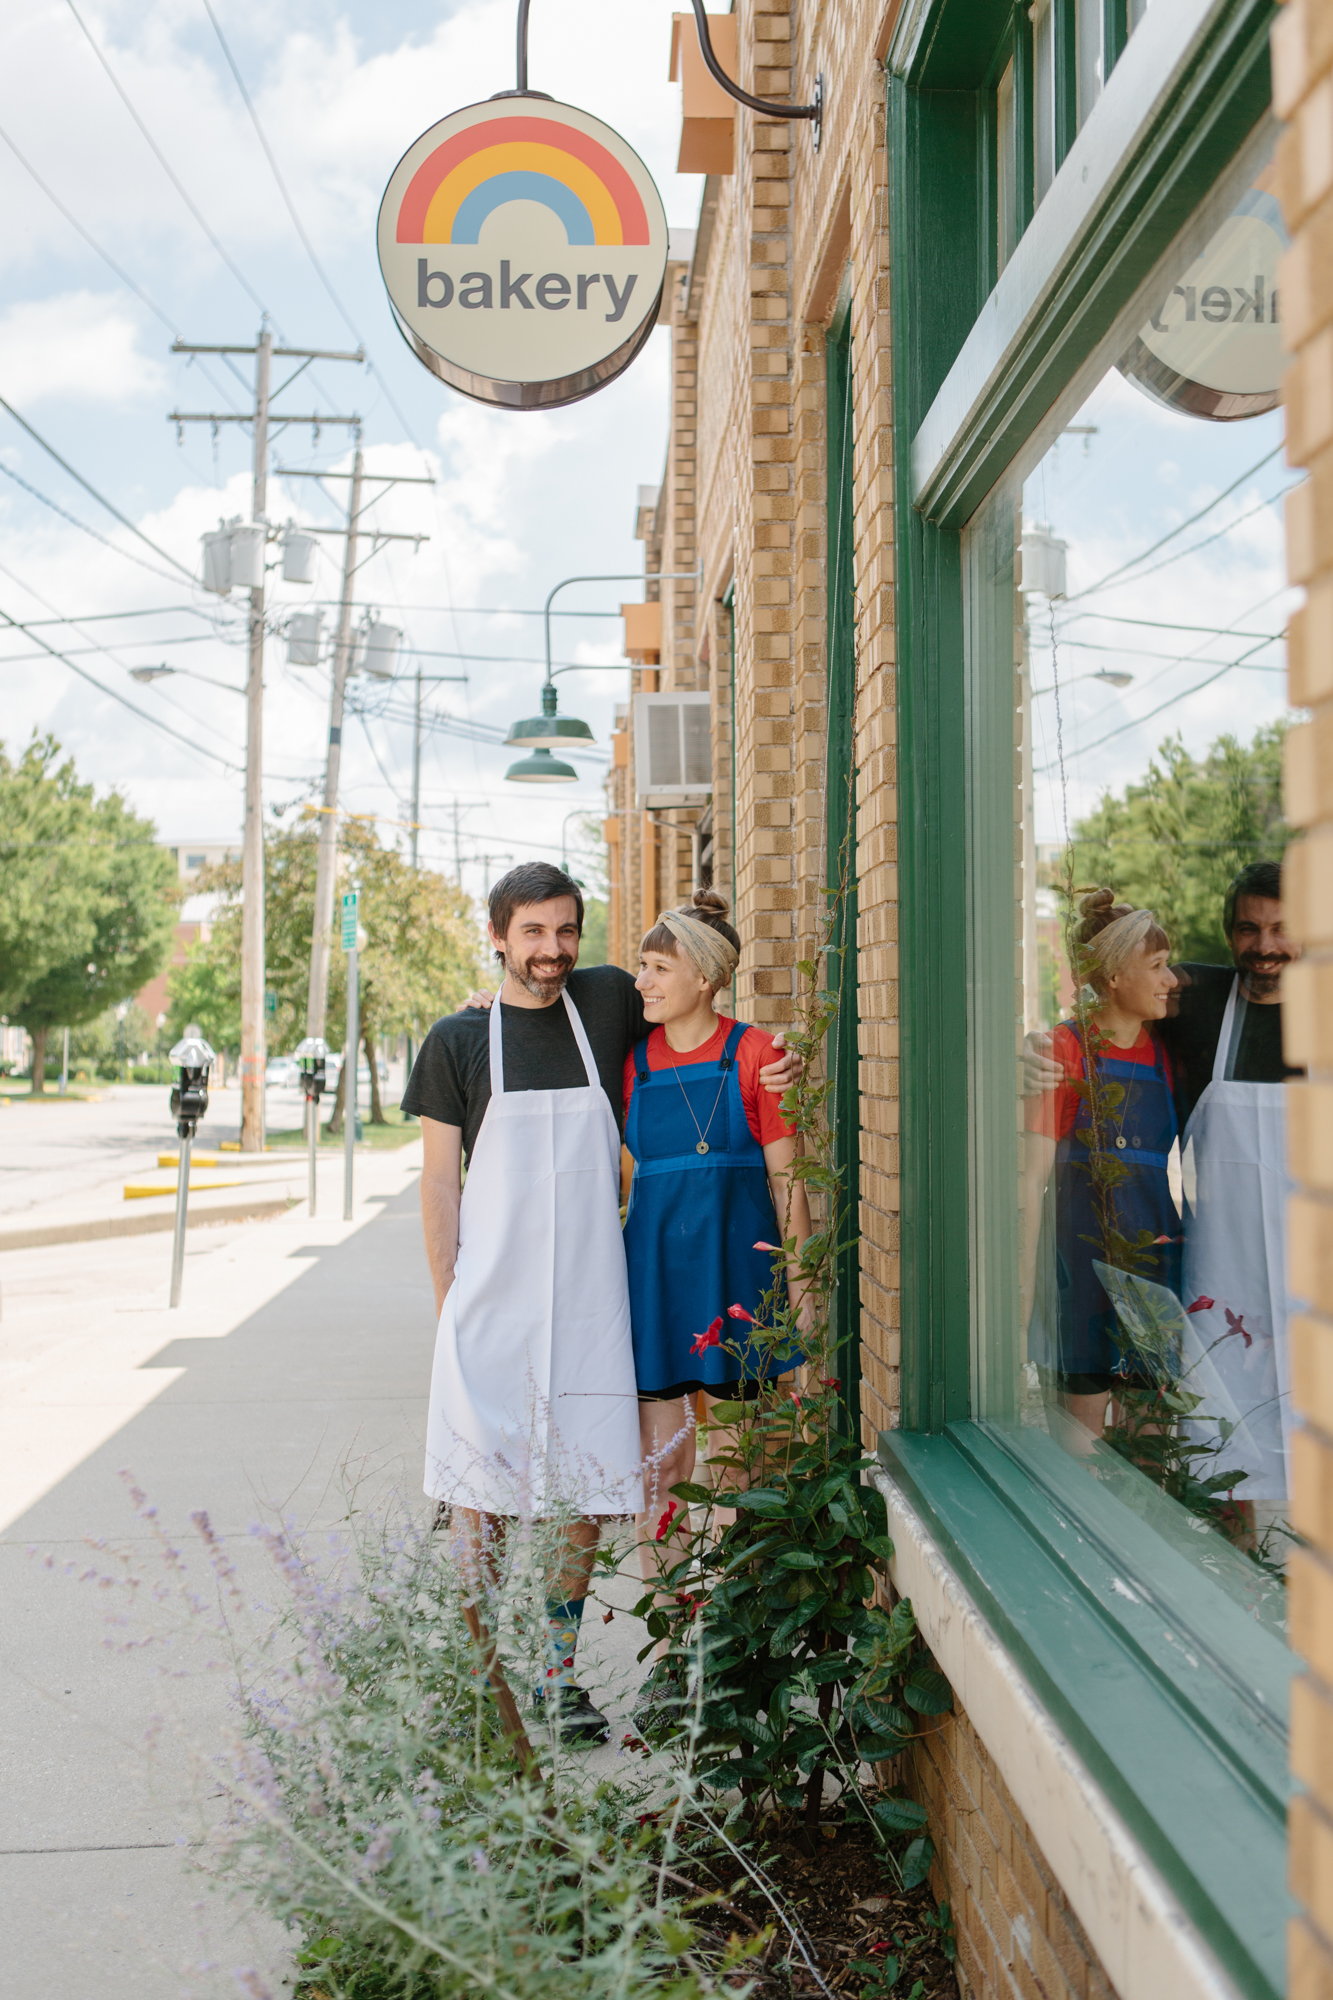 A portrait of the owners of Rainbow Bakery, Matt Tobey and Lisa Dorazewski. Rainbow is a vegan bakery in Bloomington, Indiana photographed by photographer and videographer Anna Powell Teeter.